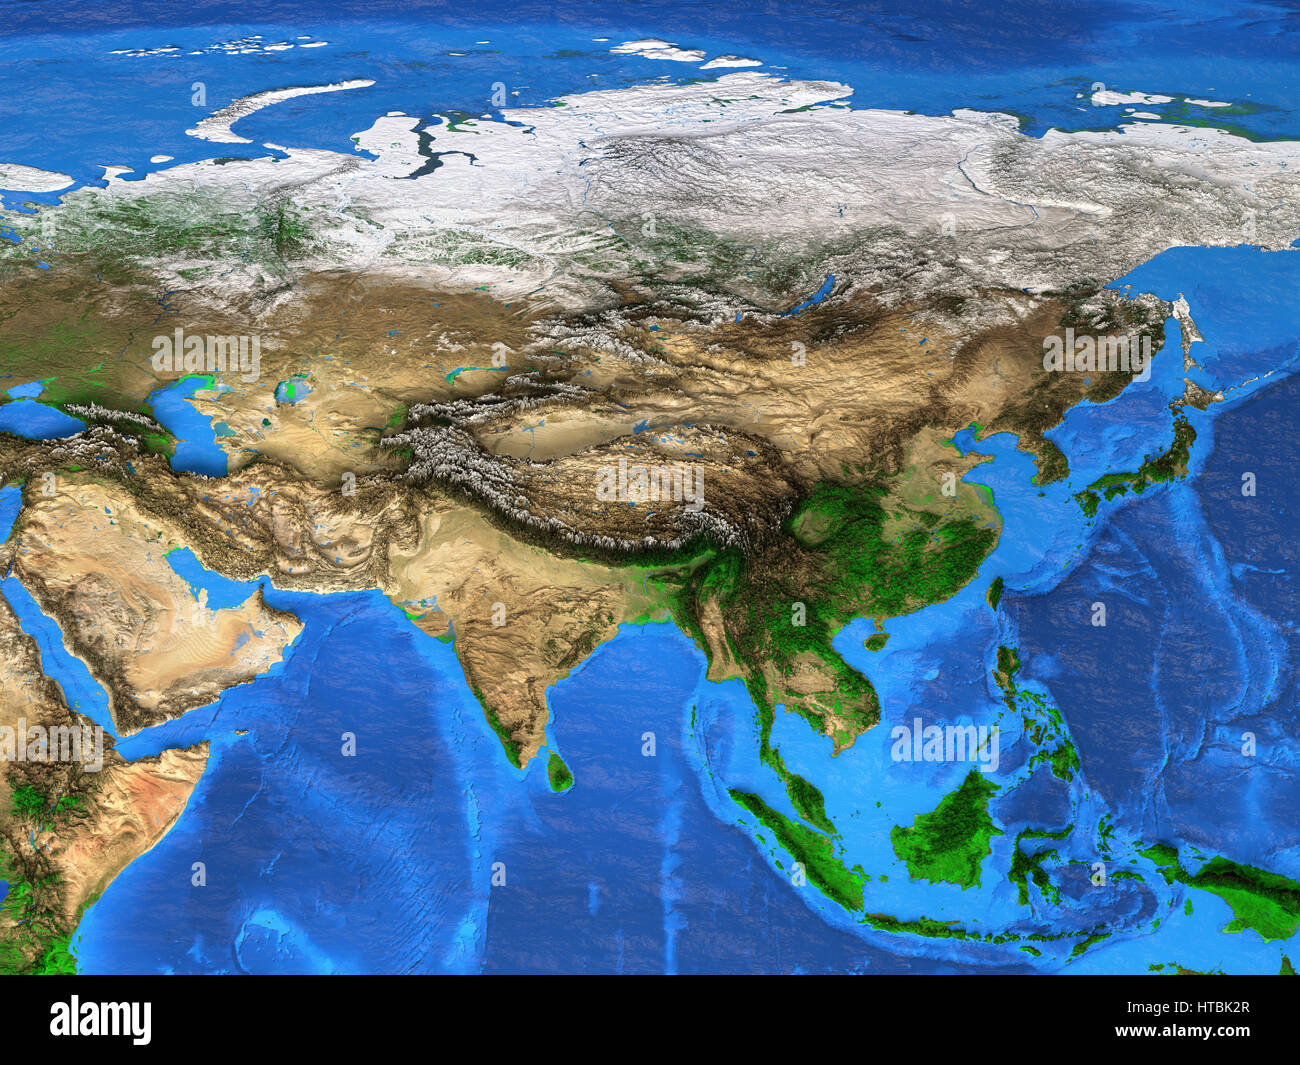 Detailed Satellite View Of The Earth And Its Landforms Asia Map